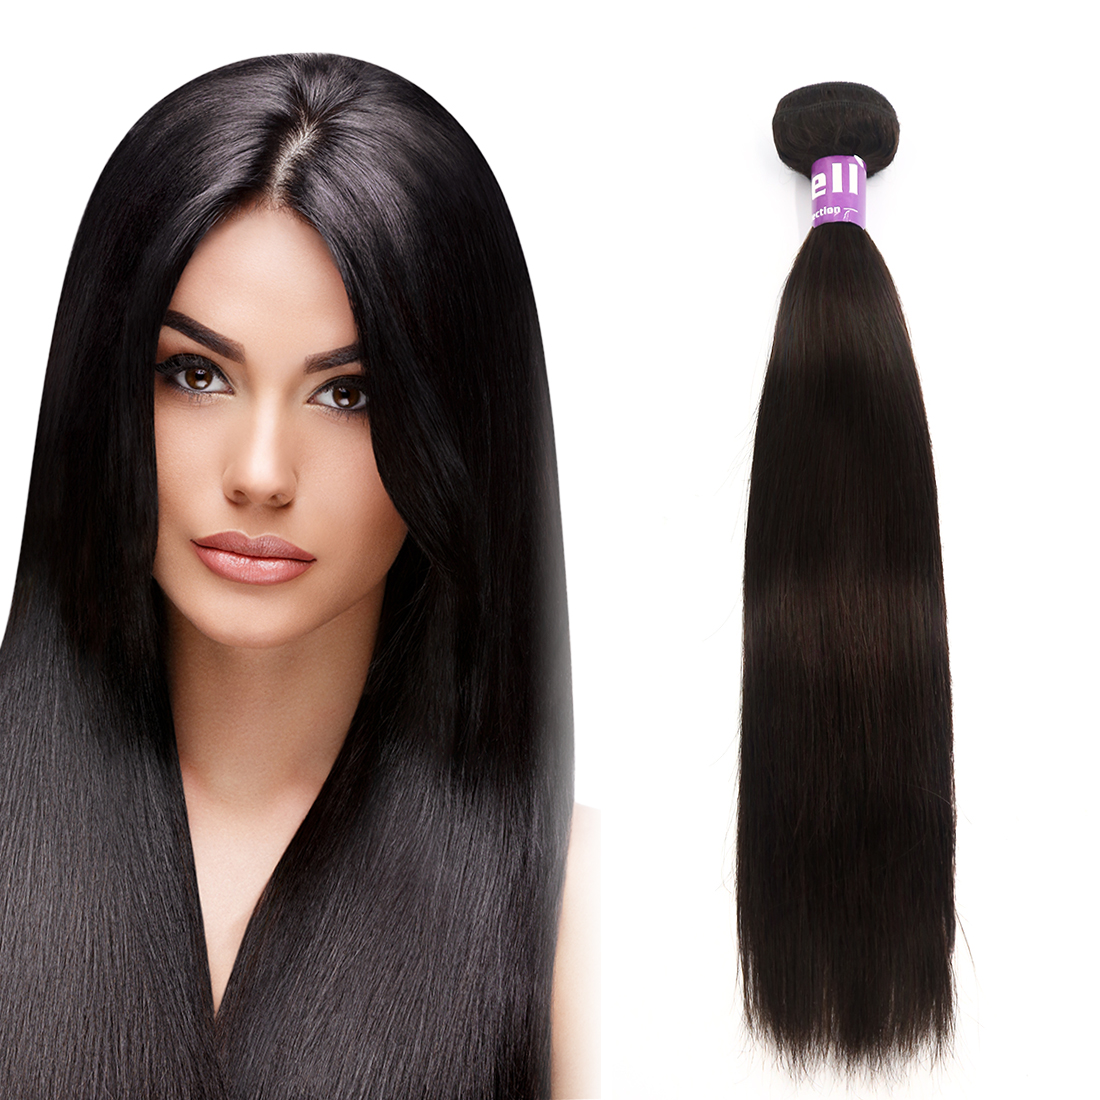 Peruvian Virgin Silky Straight Human Hair Weave Extensions 7A 22 Inch 1 Bundle